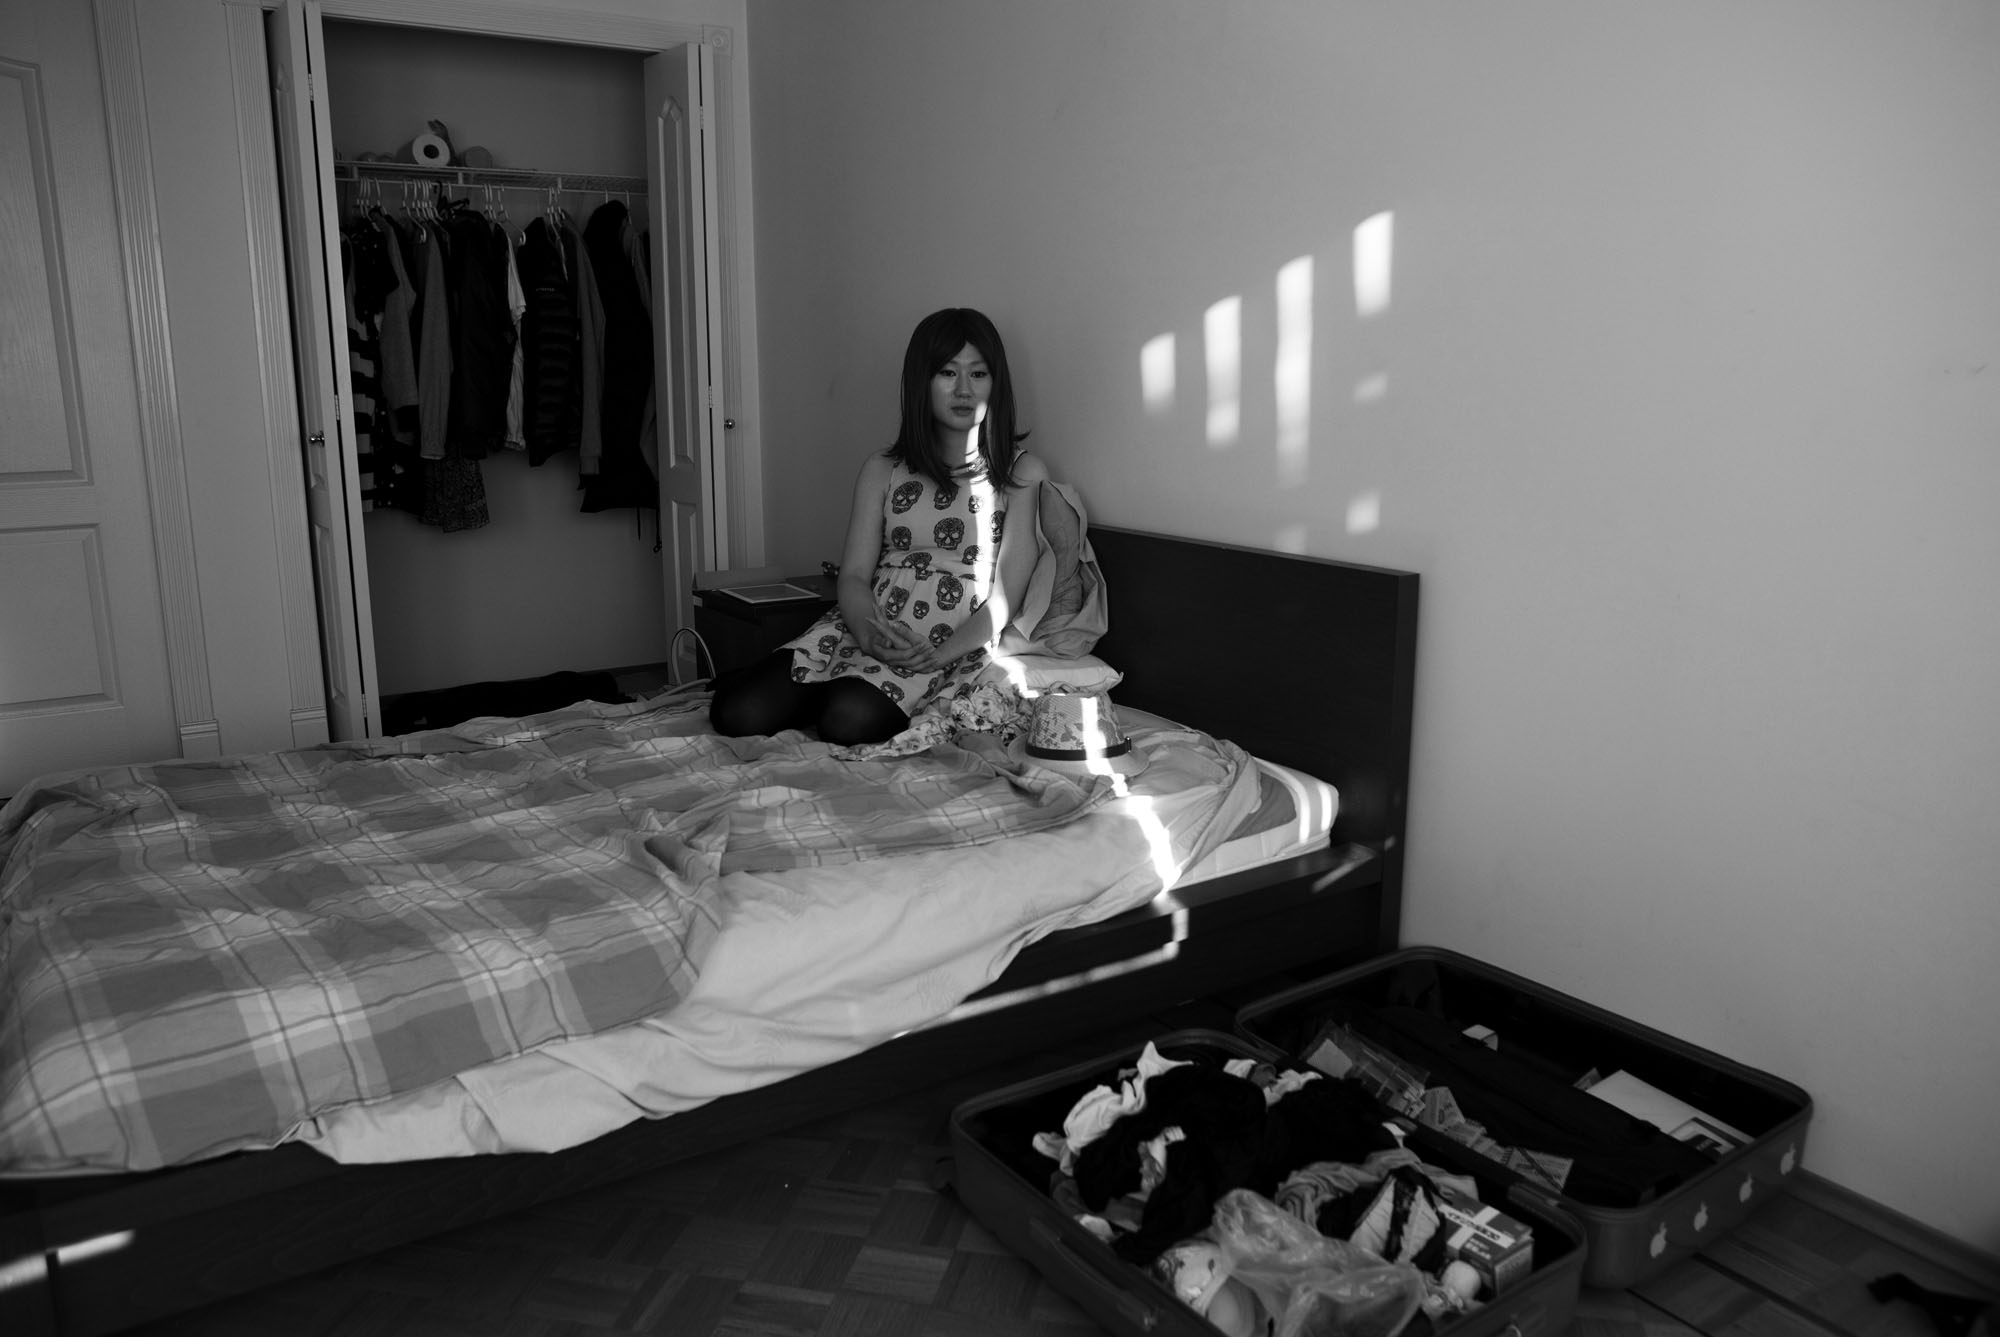 Kate (alias) a male to female transgender refugee from South Korea, sits on her bed in a room she rents in Surrey, BC., on May 27, 2014. Kate came to Canada from South Korea after being conscripted to the military. Kate identifies as female and was not comfortable being forced to live and shower with strange men for two years of service. She was told she had to get a sex change to avoid service, join the military or be imprisoned. Kate had a successful hearing earlier in May and will eventually become a permanent resident.